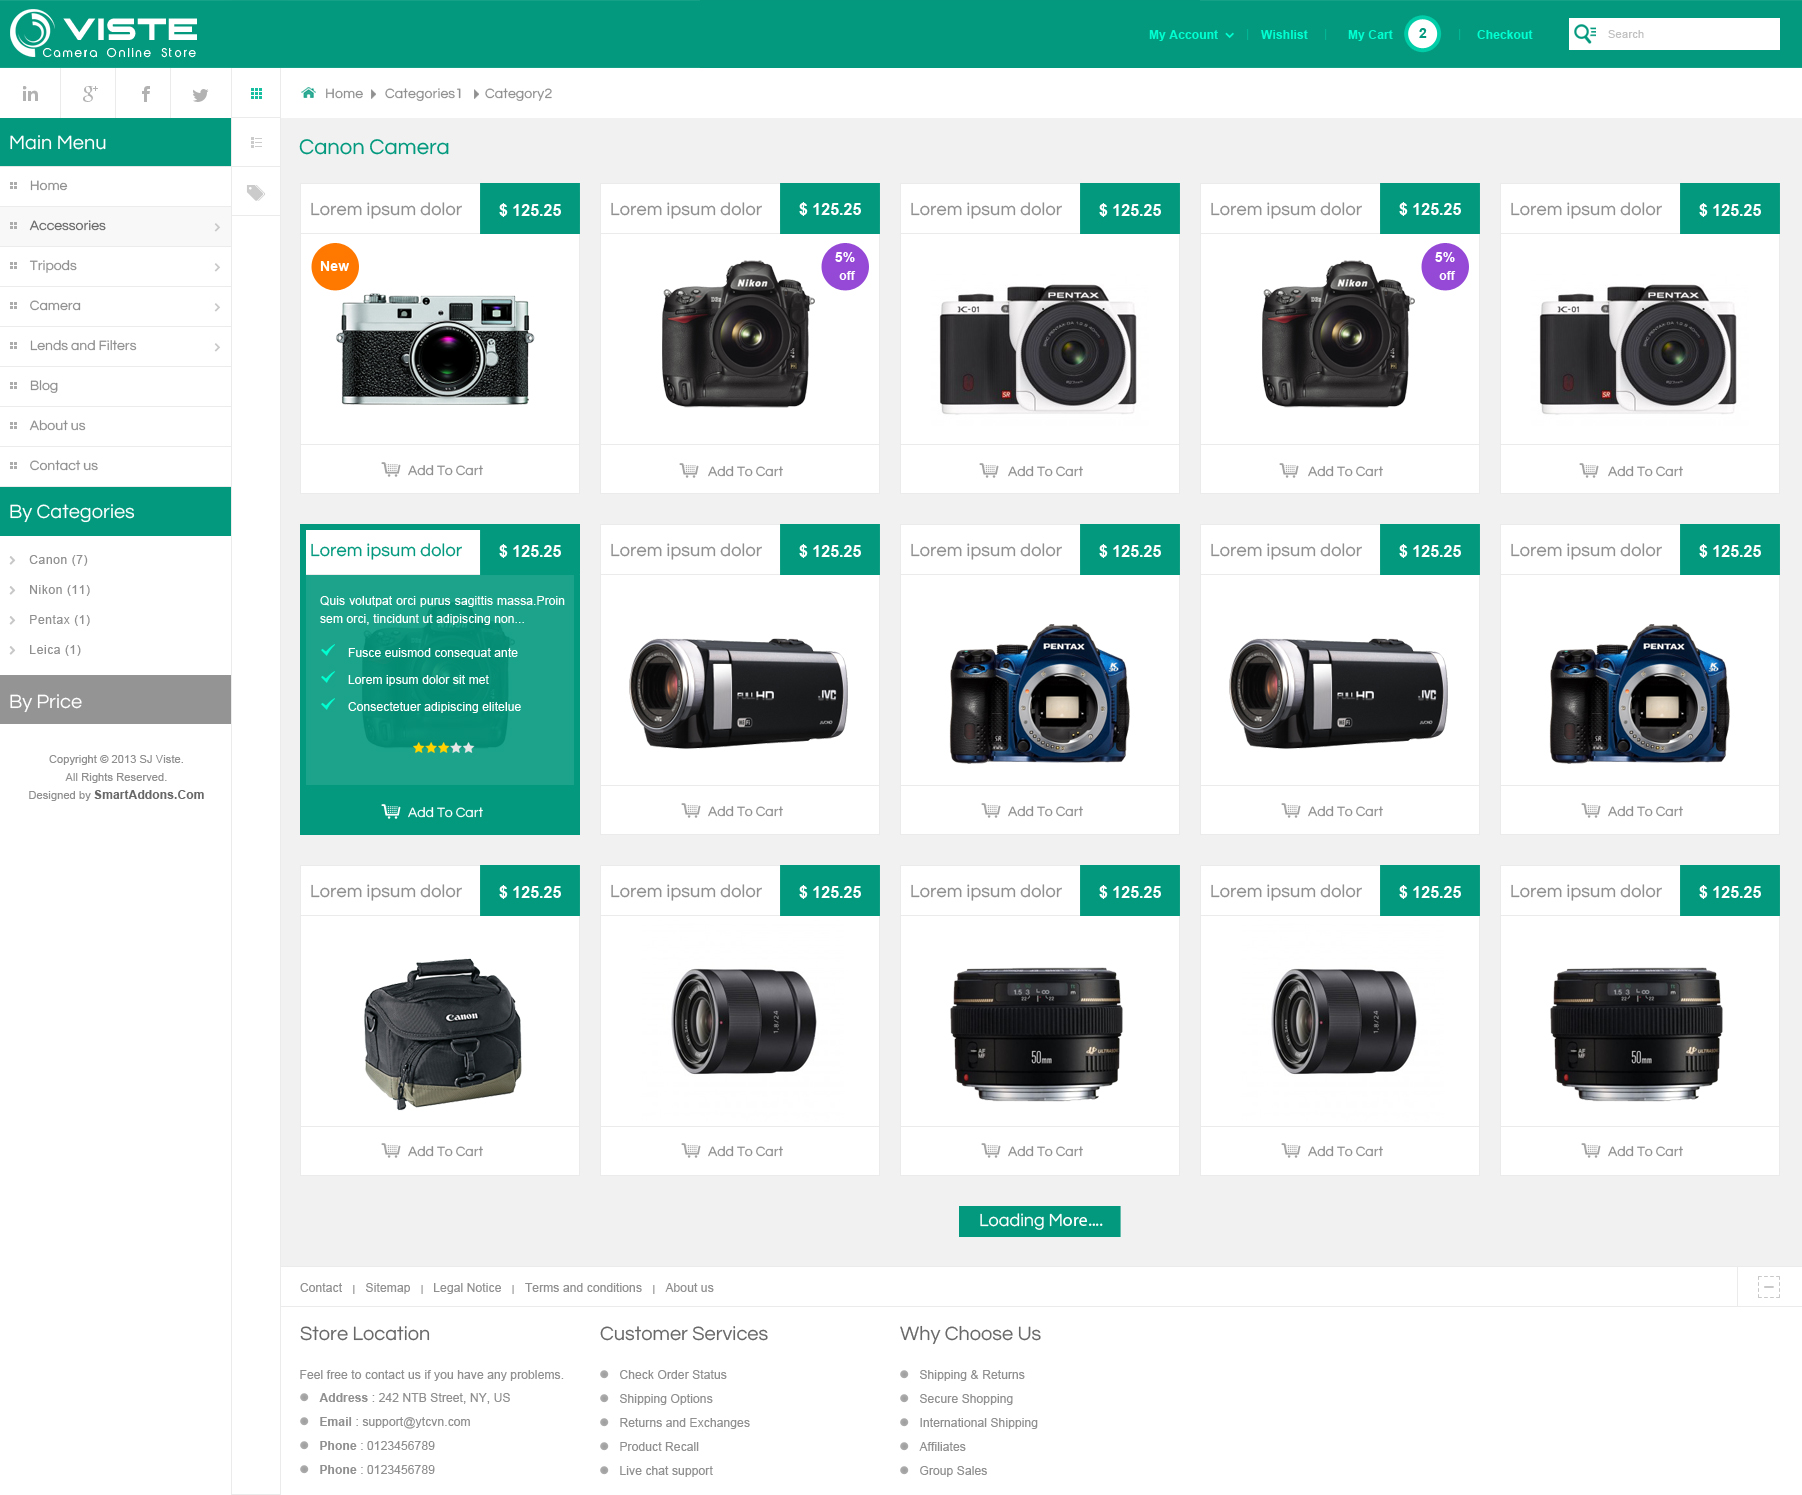 Preview] SJ Viste - Responsive Joomla! template with VirtueMart